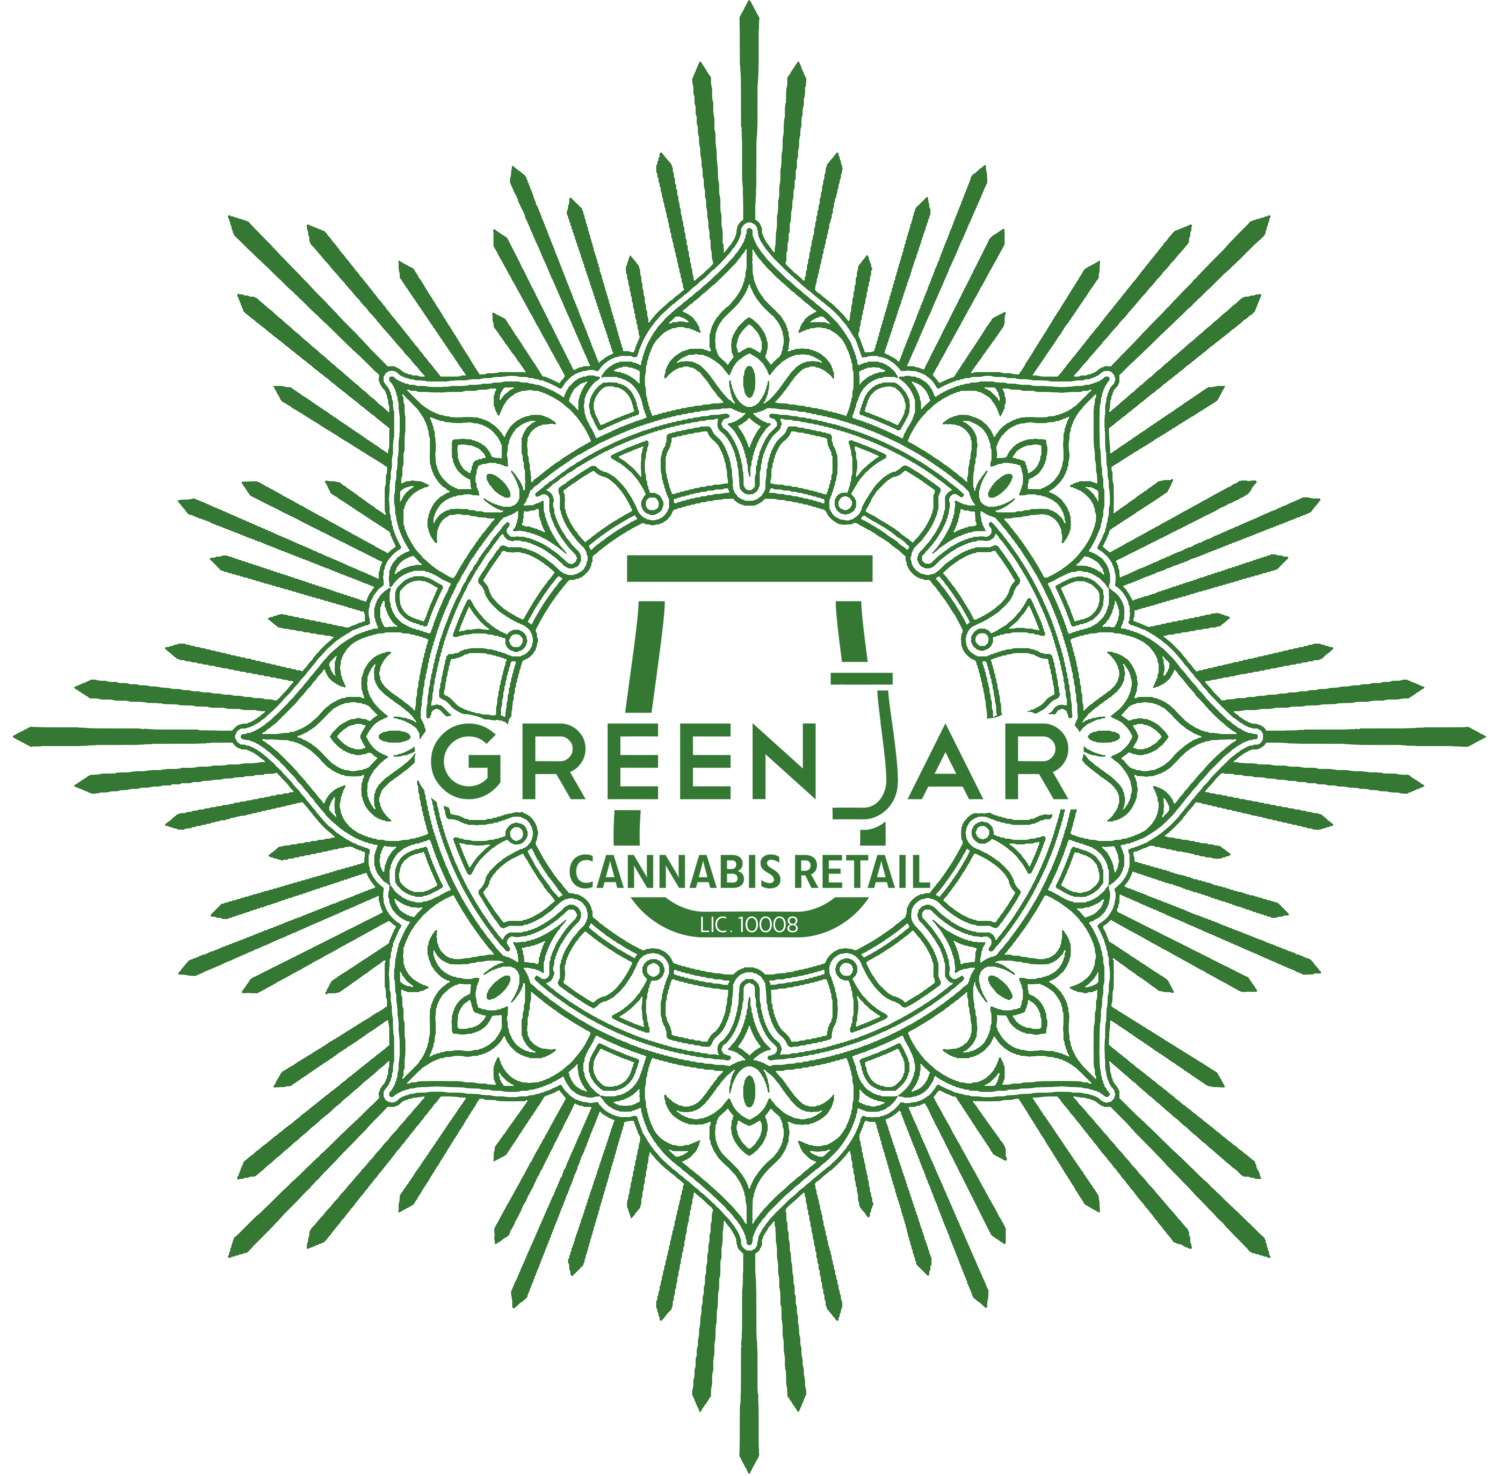 GreenJarmandalalogo.png